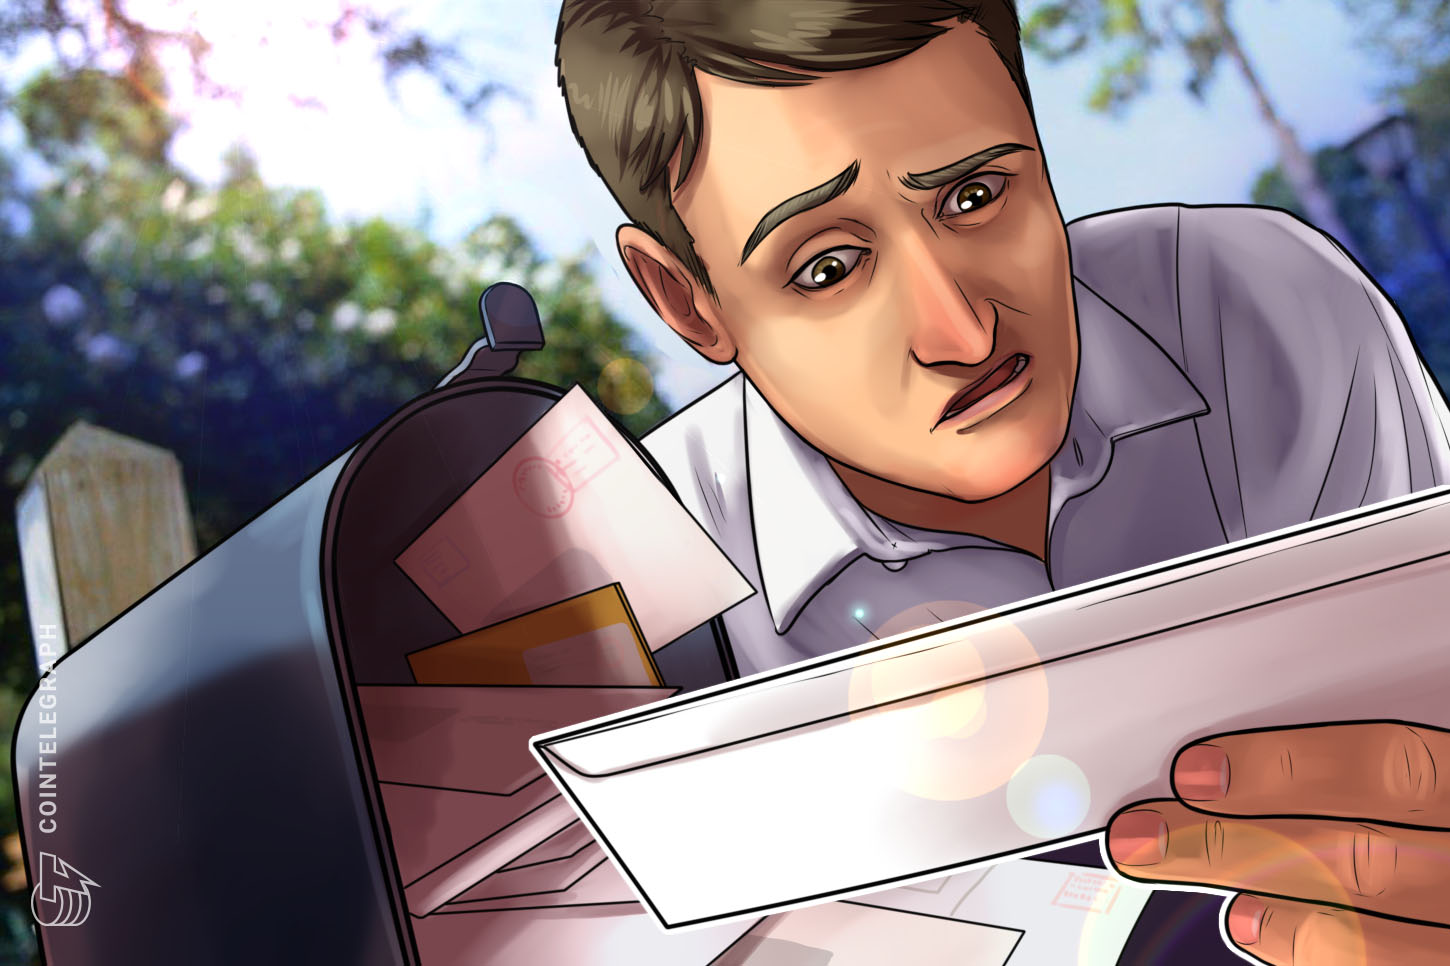 US postal inspectors need 'comprehensive crypto training,' audit finds